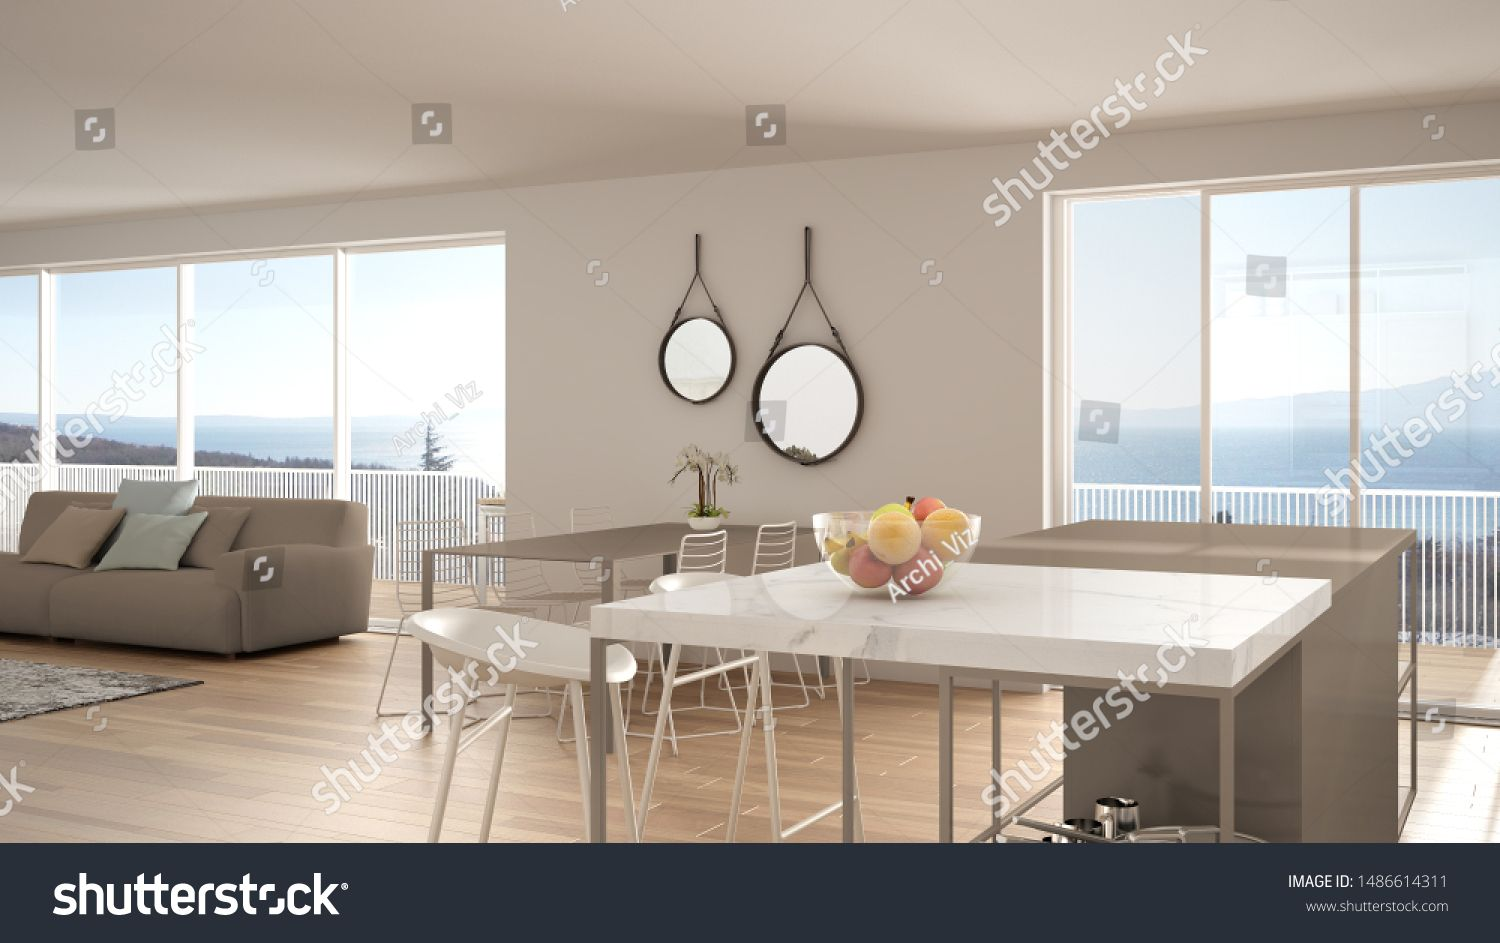 Penthouse Minimalist Kitchen Interior Design Lounge With Sofa And